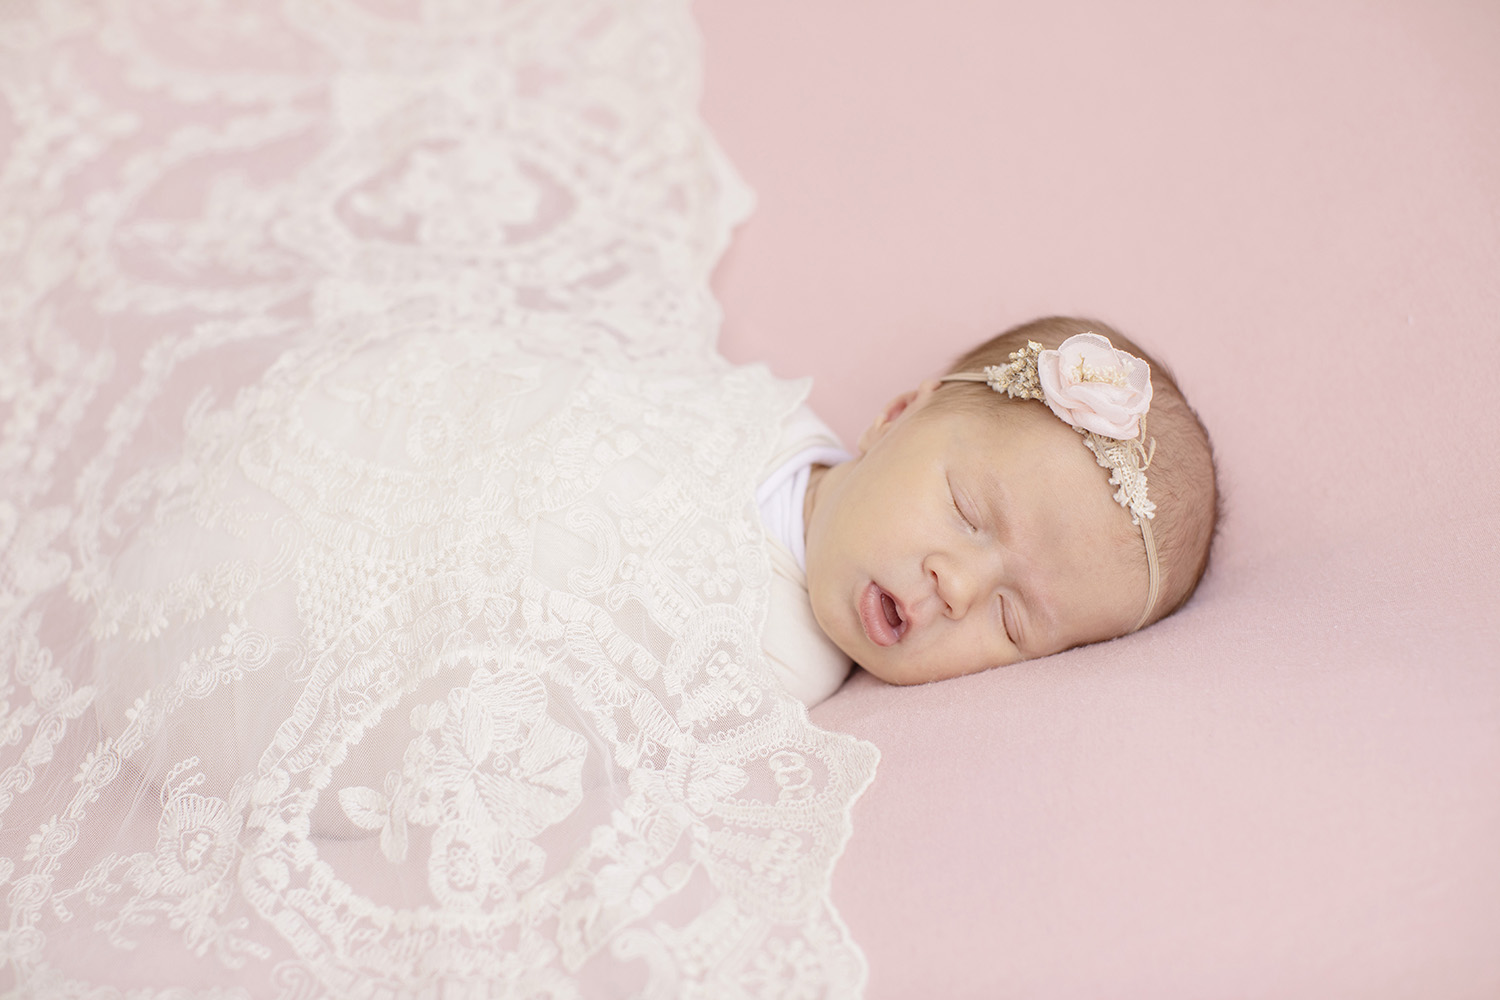 swetman-photography-newborn-photographer-mississippi.jpg